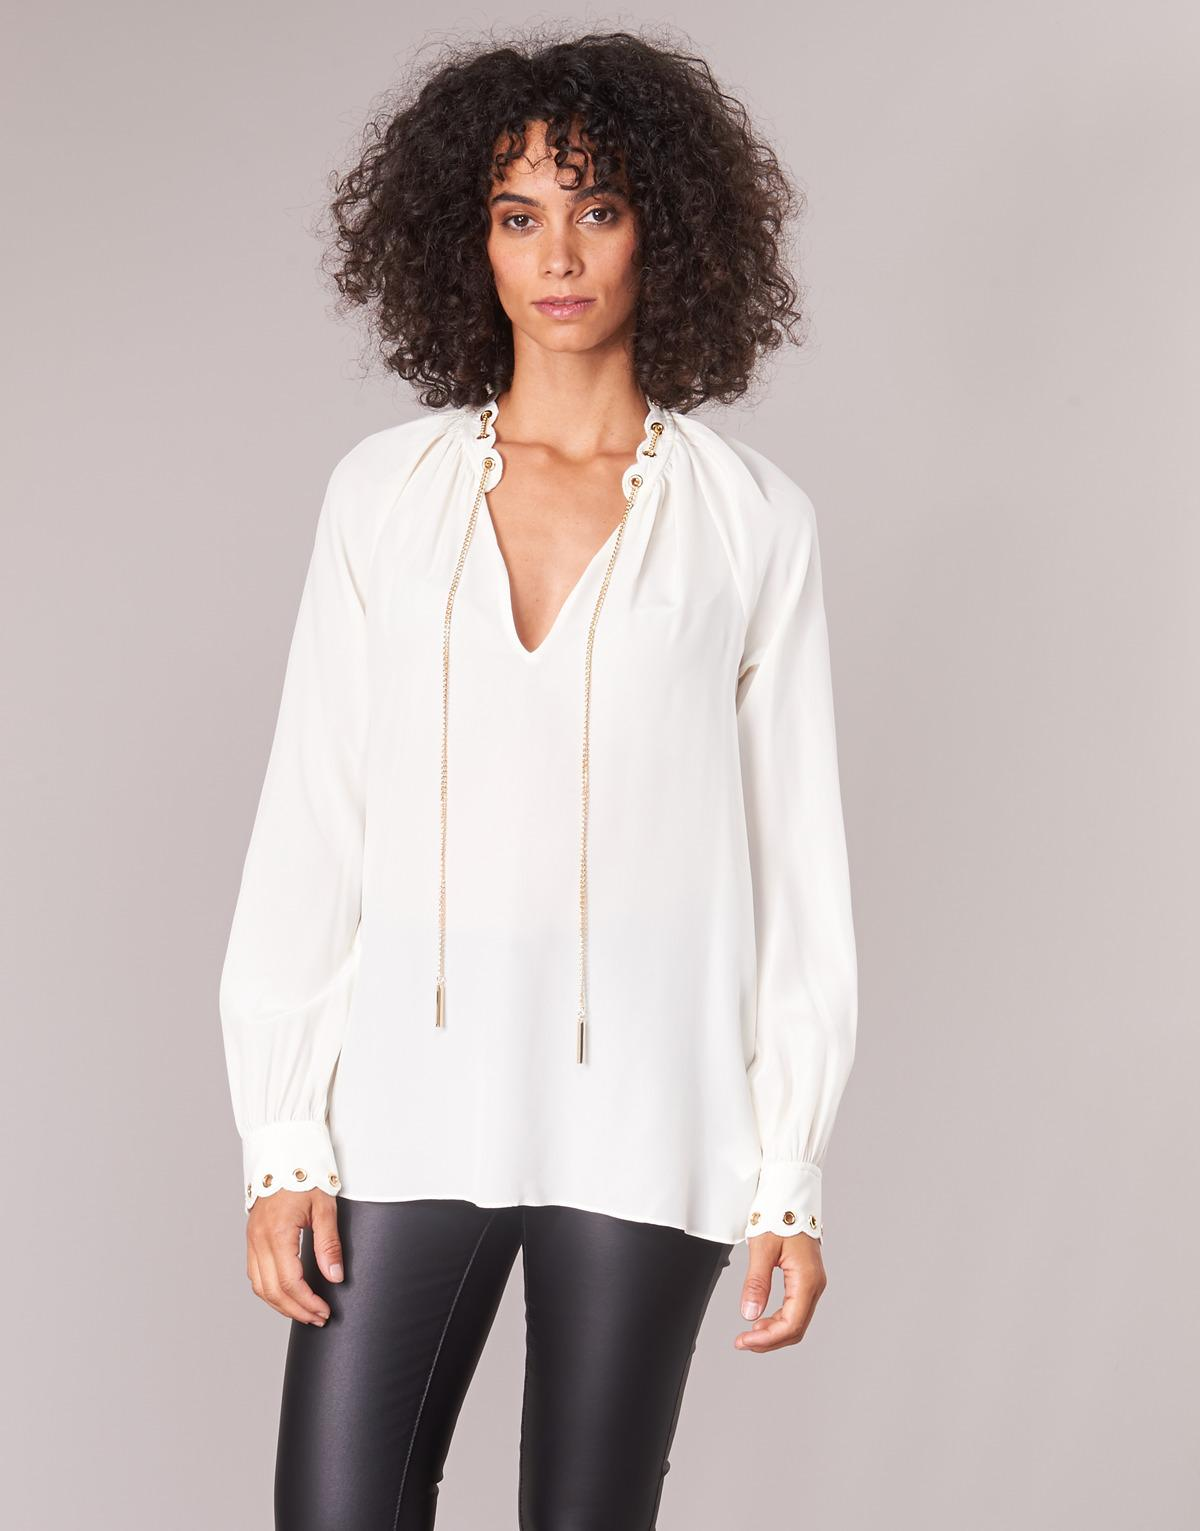 8ee776d5125ea MICHAEL Michael Kors Scallp Grmt Chain Top Women s Blouse In White in White  - Lyst